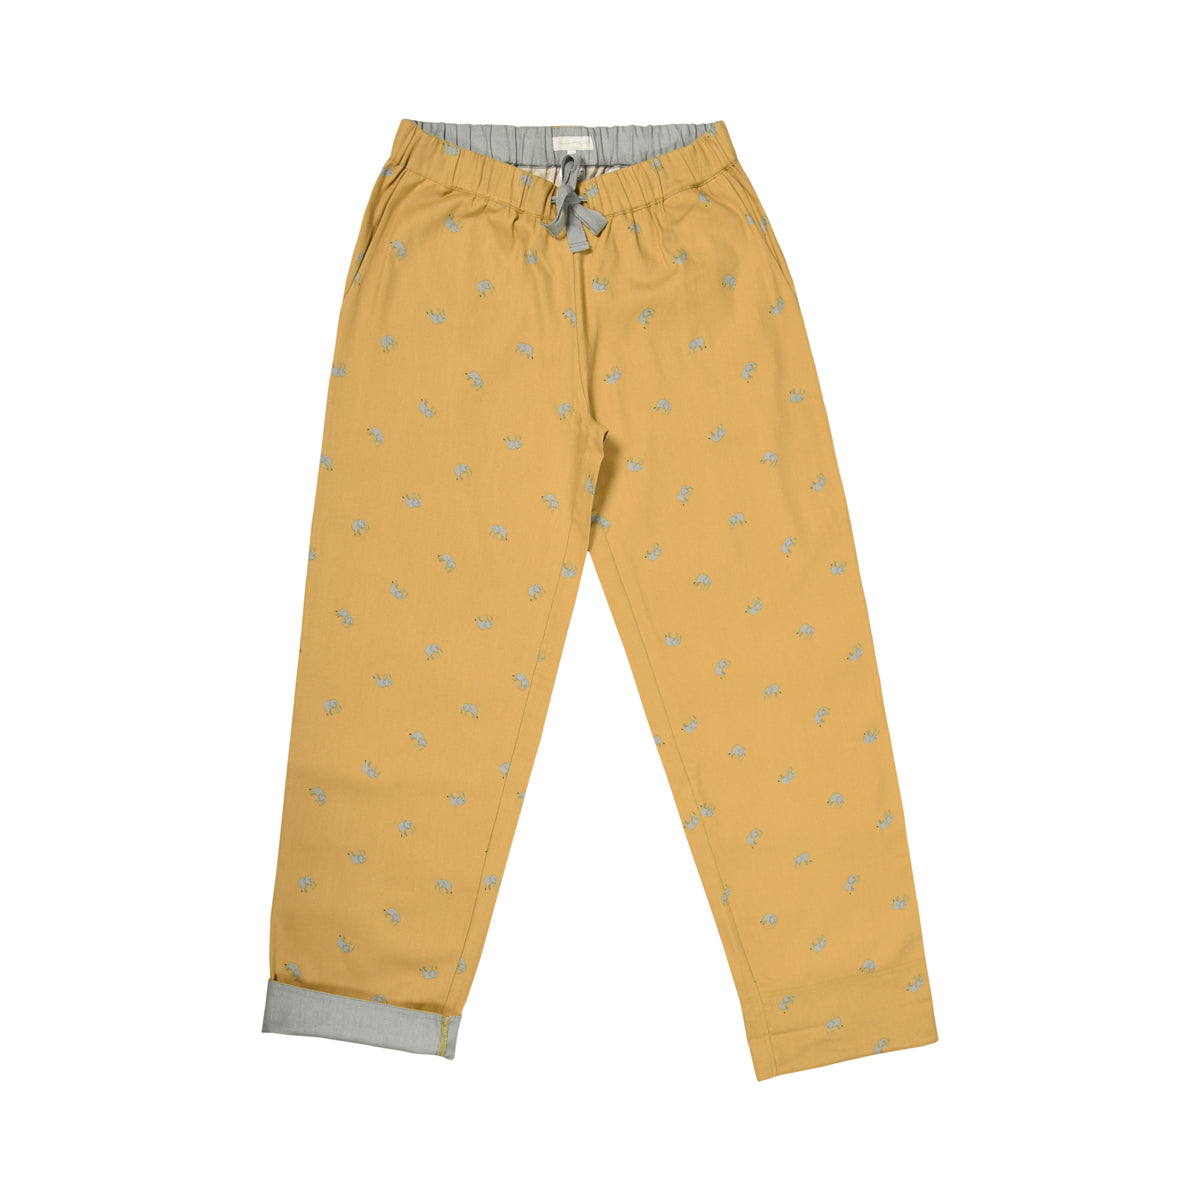 Mustard yellow pyjama bottoms covered in pretty grey elephants